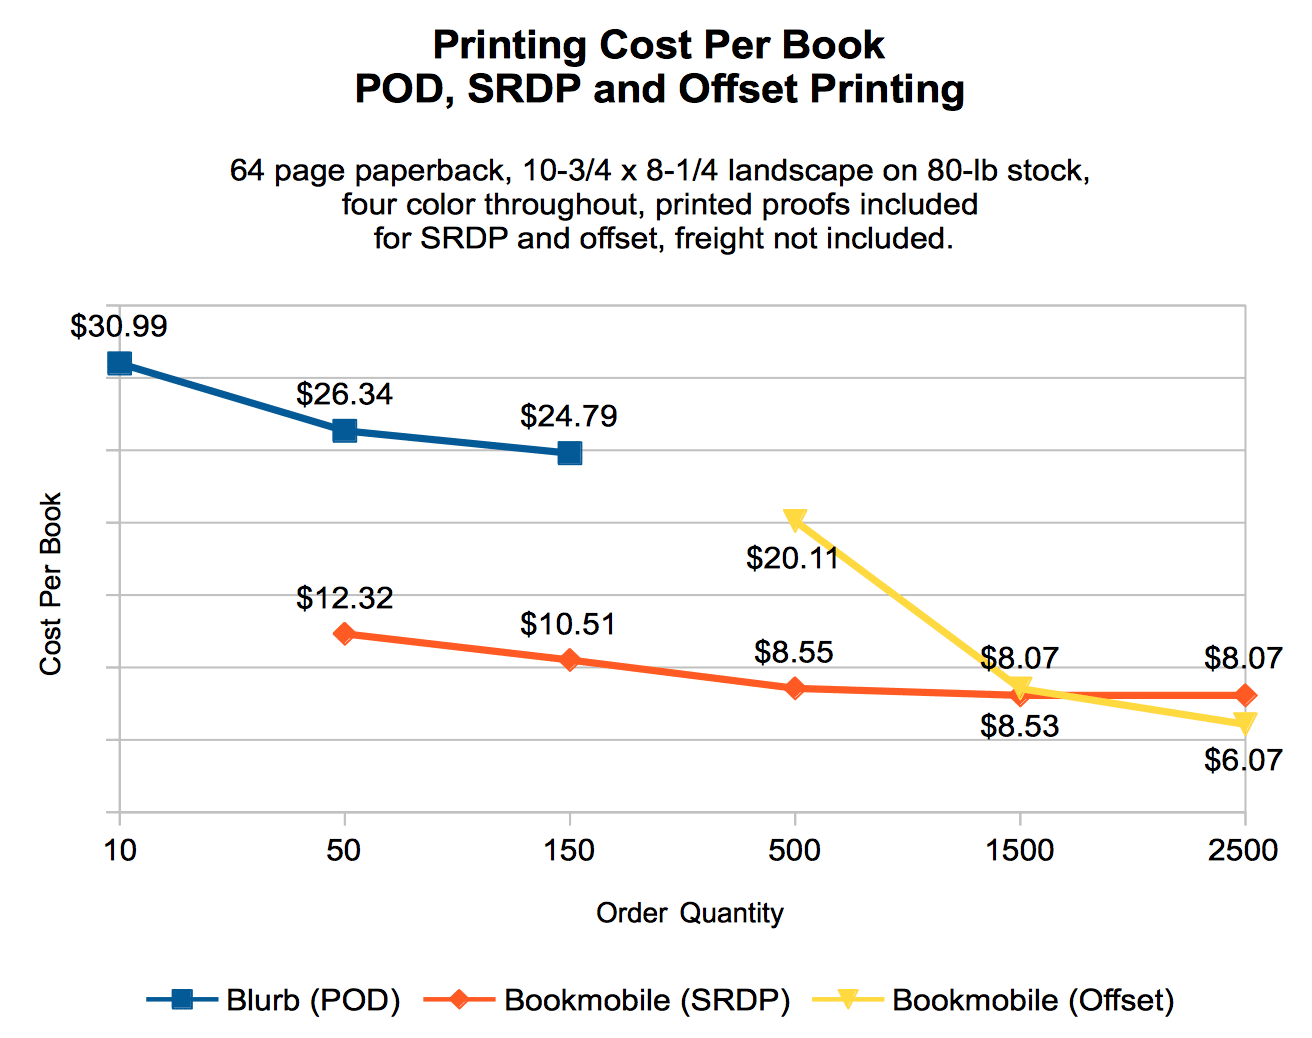 POD, SRDP and offset photo book pricing.